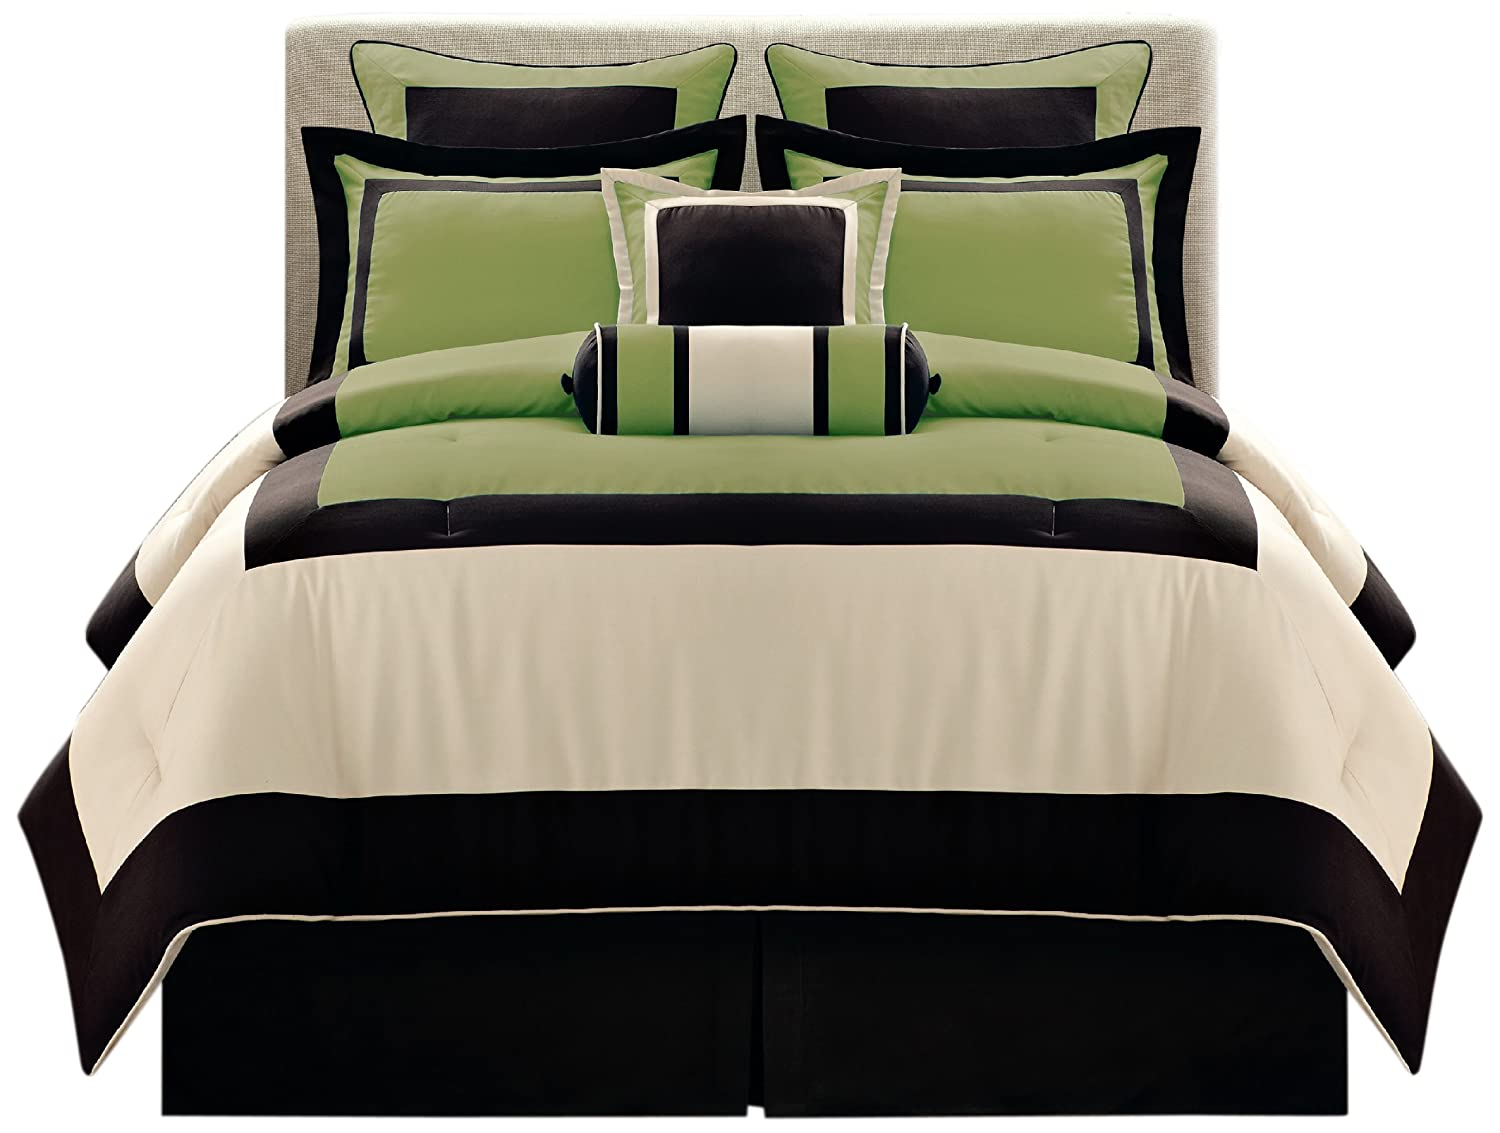 Green bedding and bedroom decor ideas Green and black bedroom